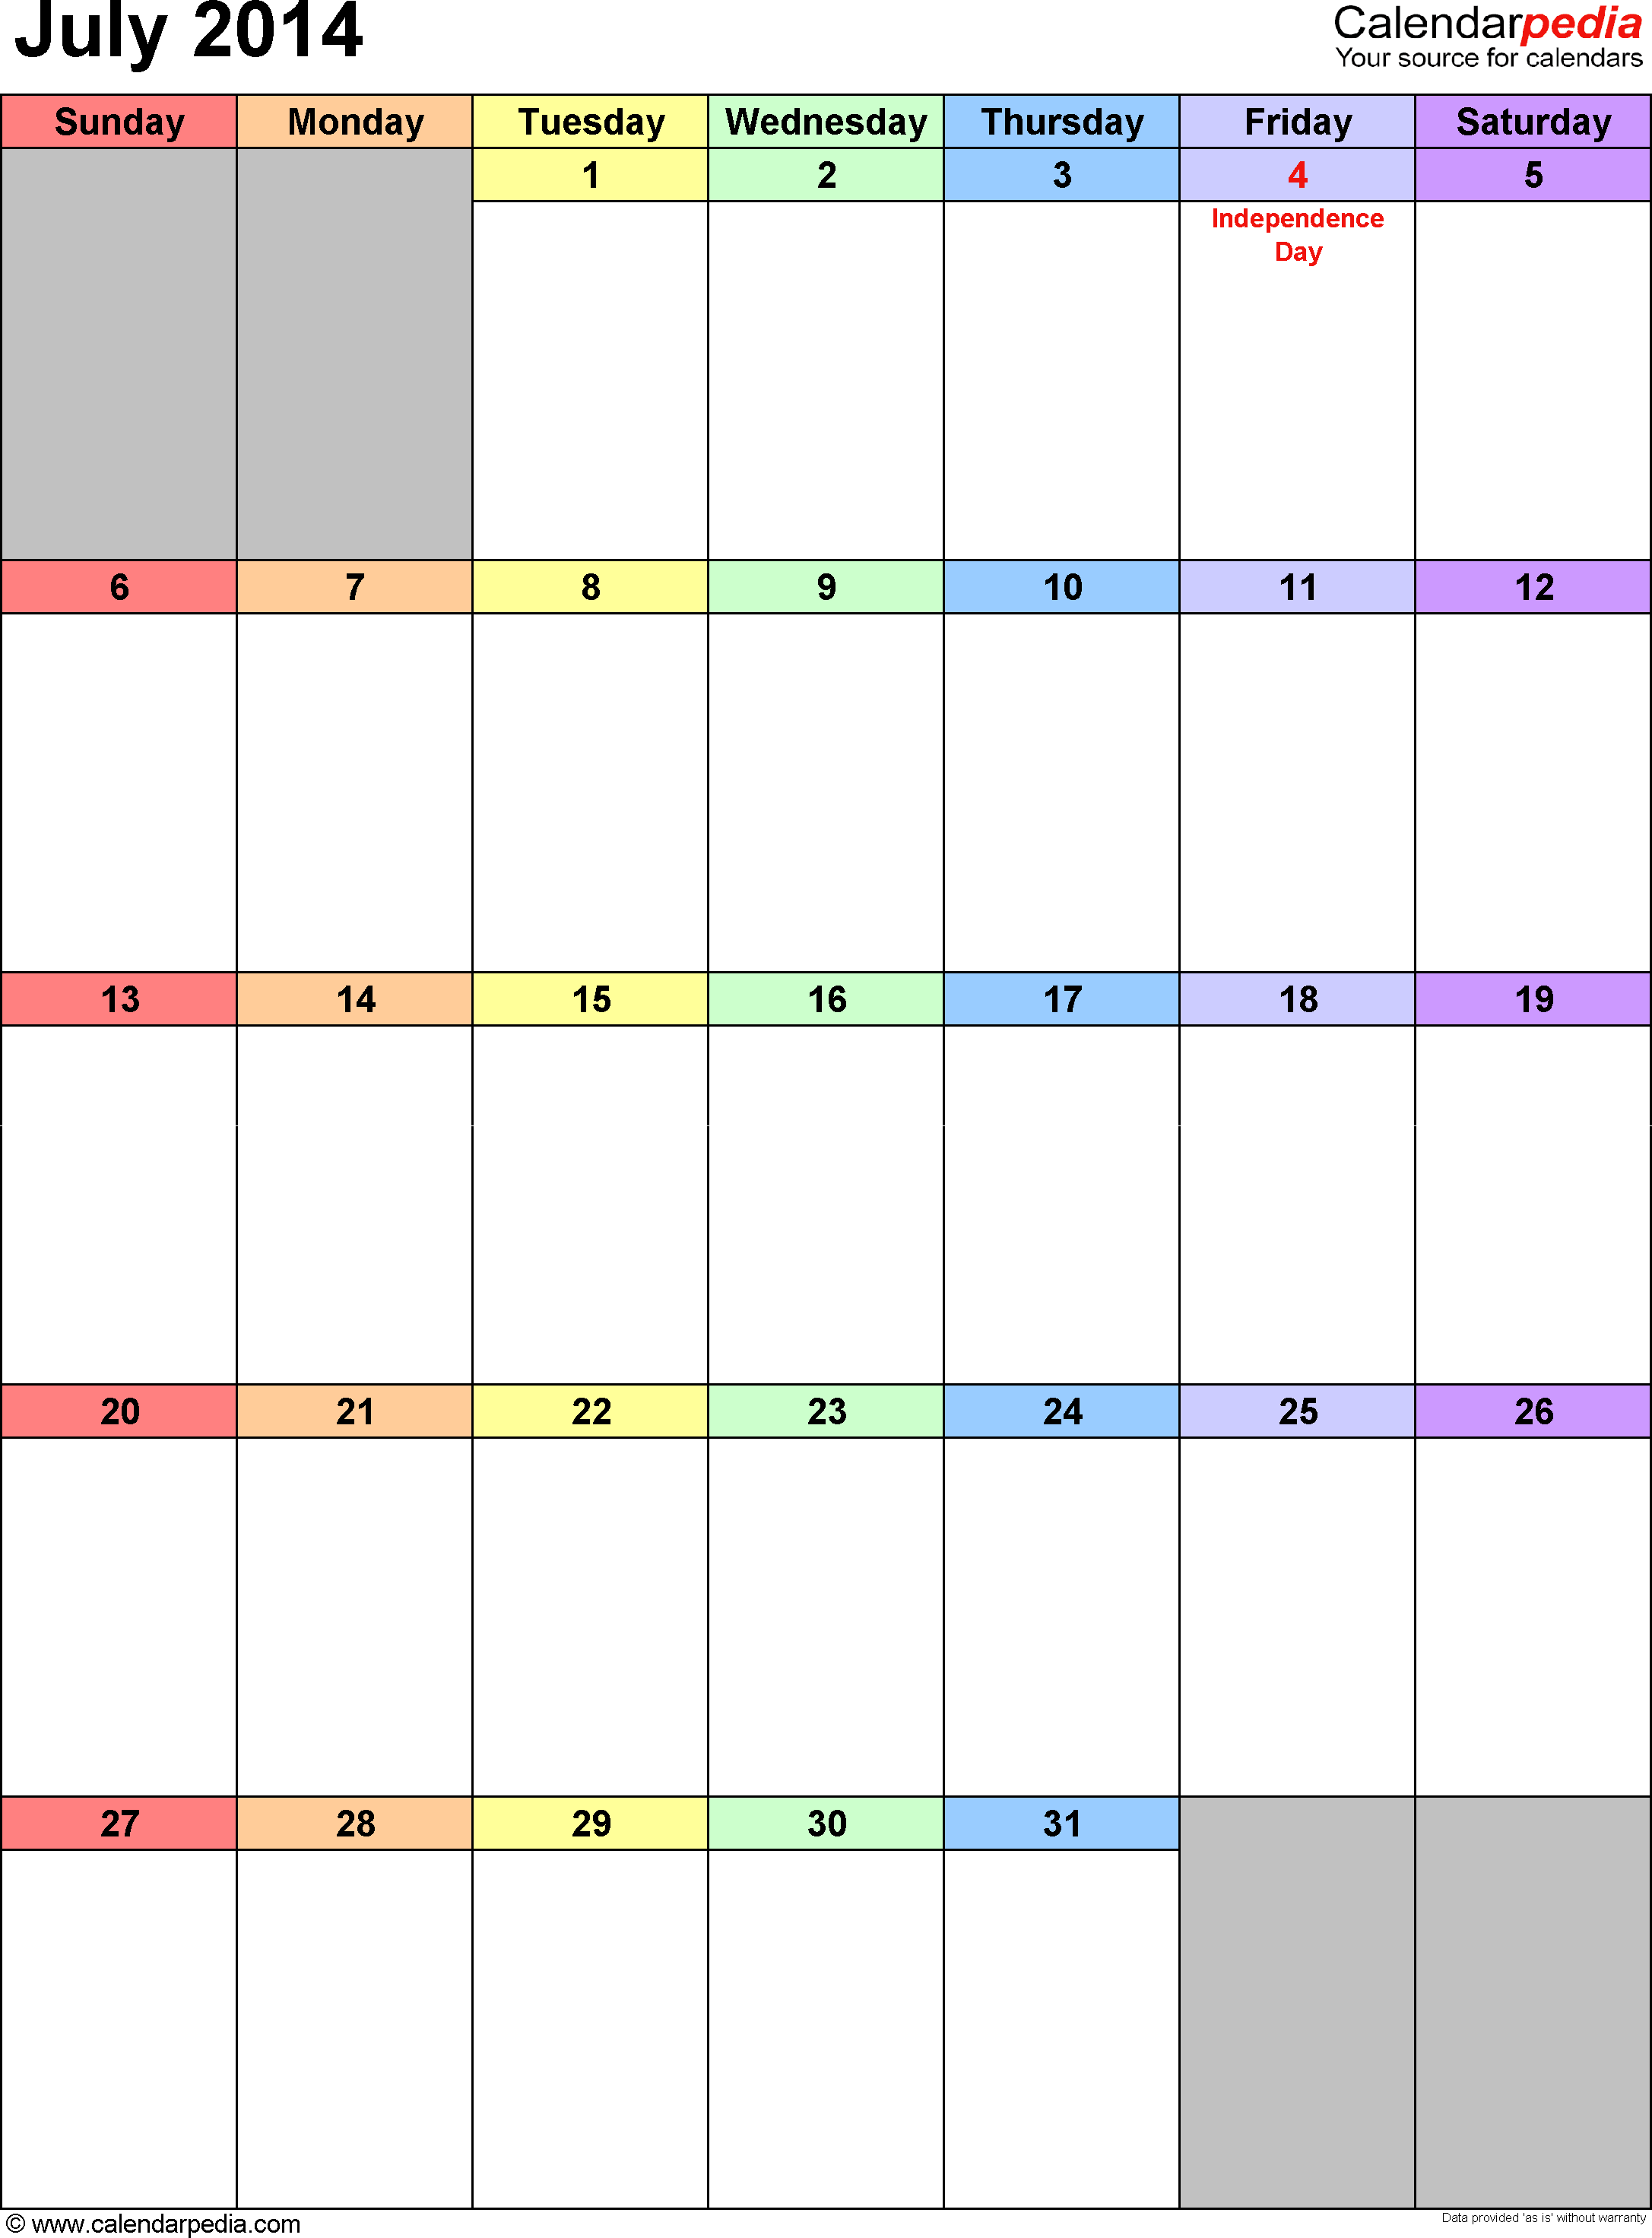 July 2014 calendar as printable Word, Excel & PDF templates